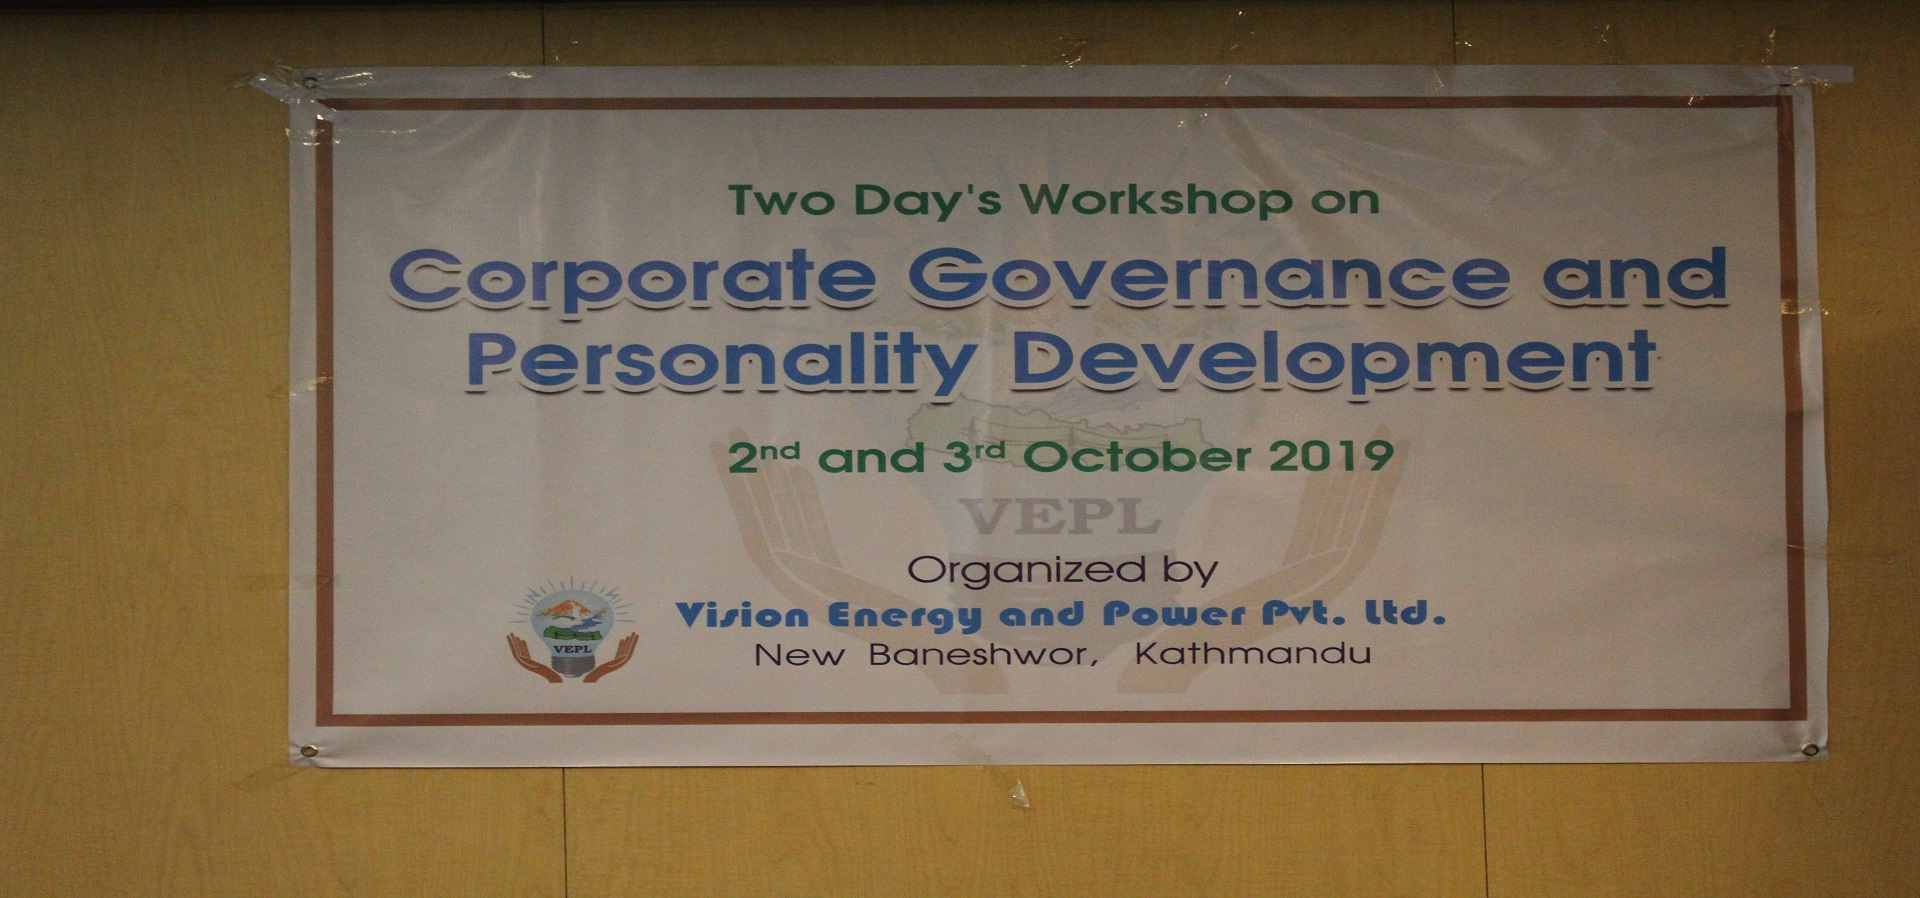 Two Day's Workshop on Corporate Governance and Personality Development